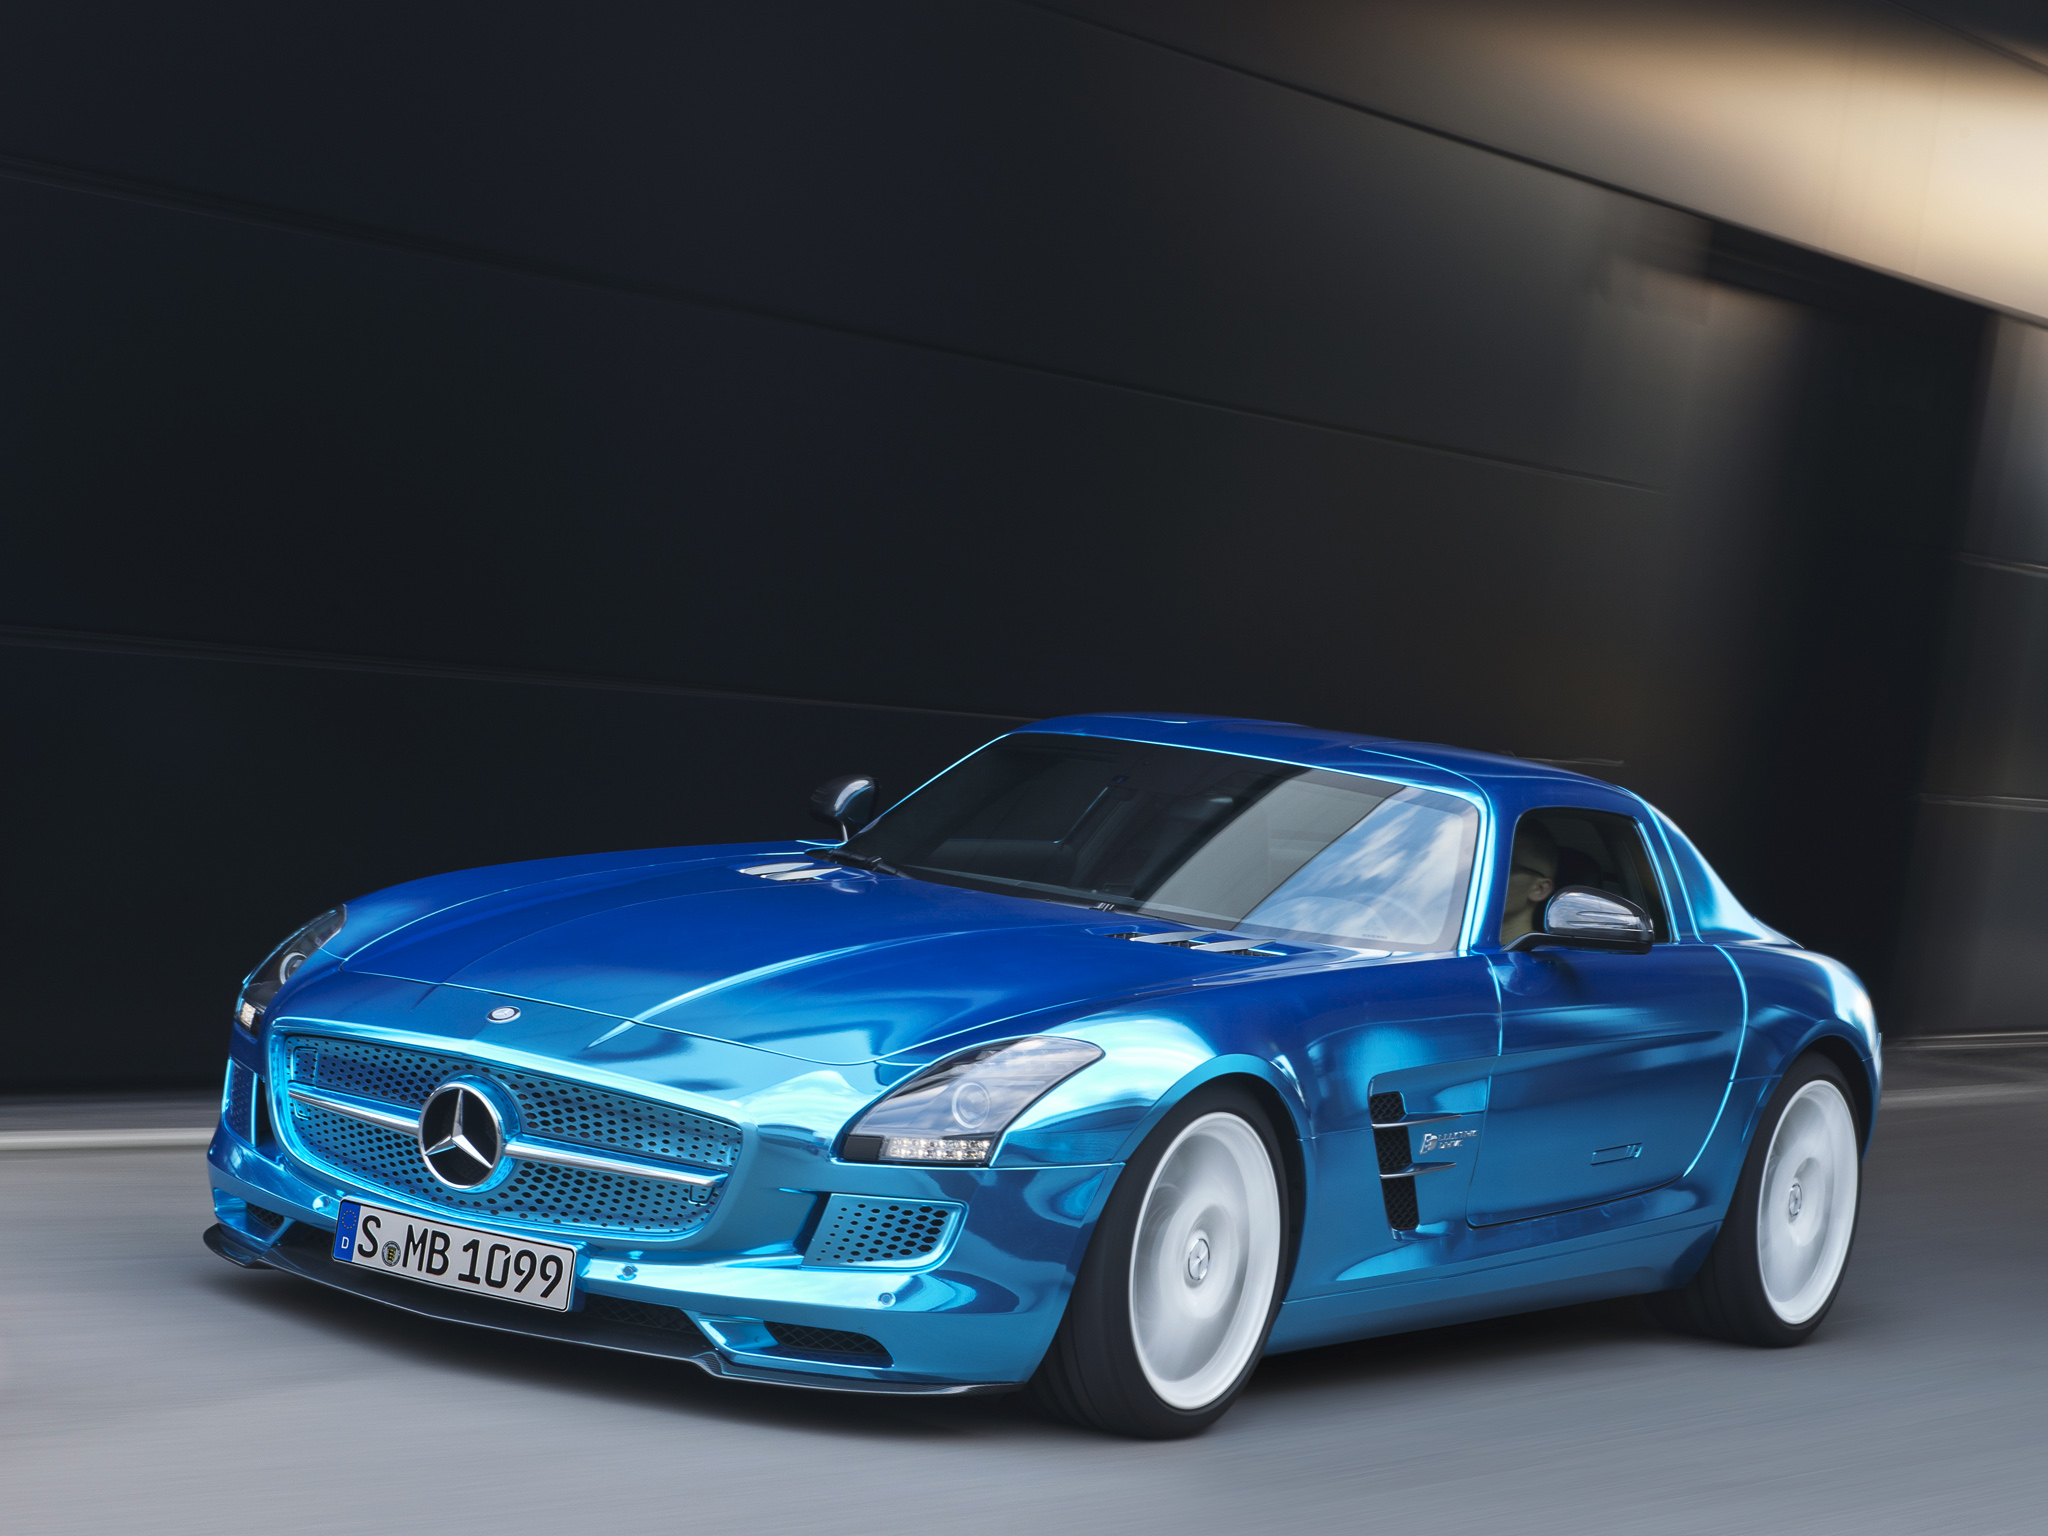 Mercedes benz sls amg electric drive shown in paris world for Mercedes benz sls amg electric drive